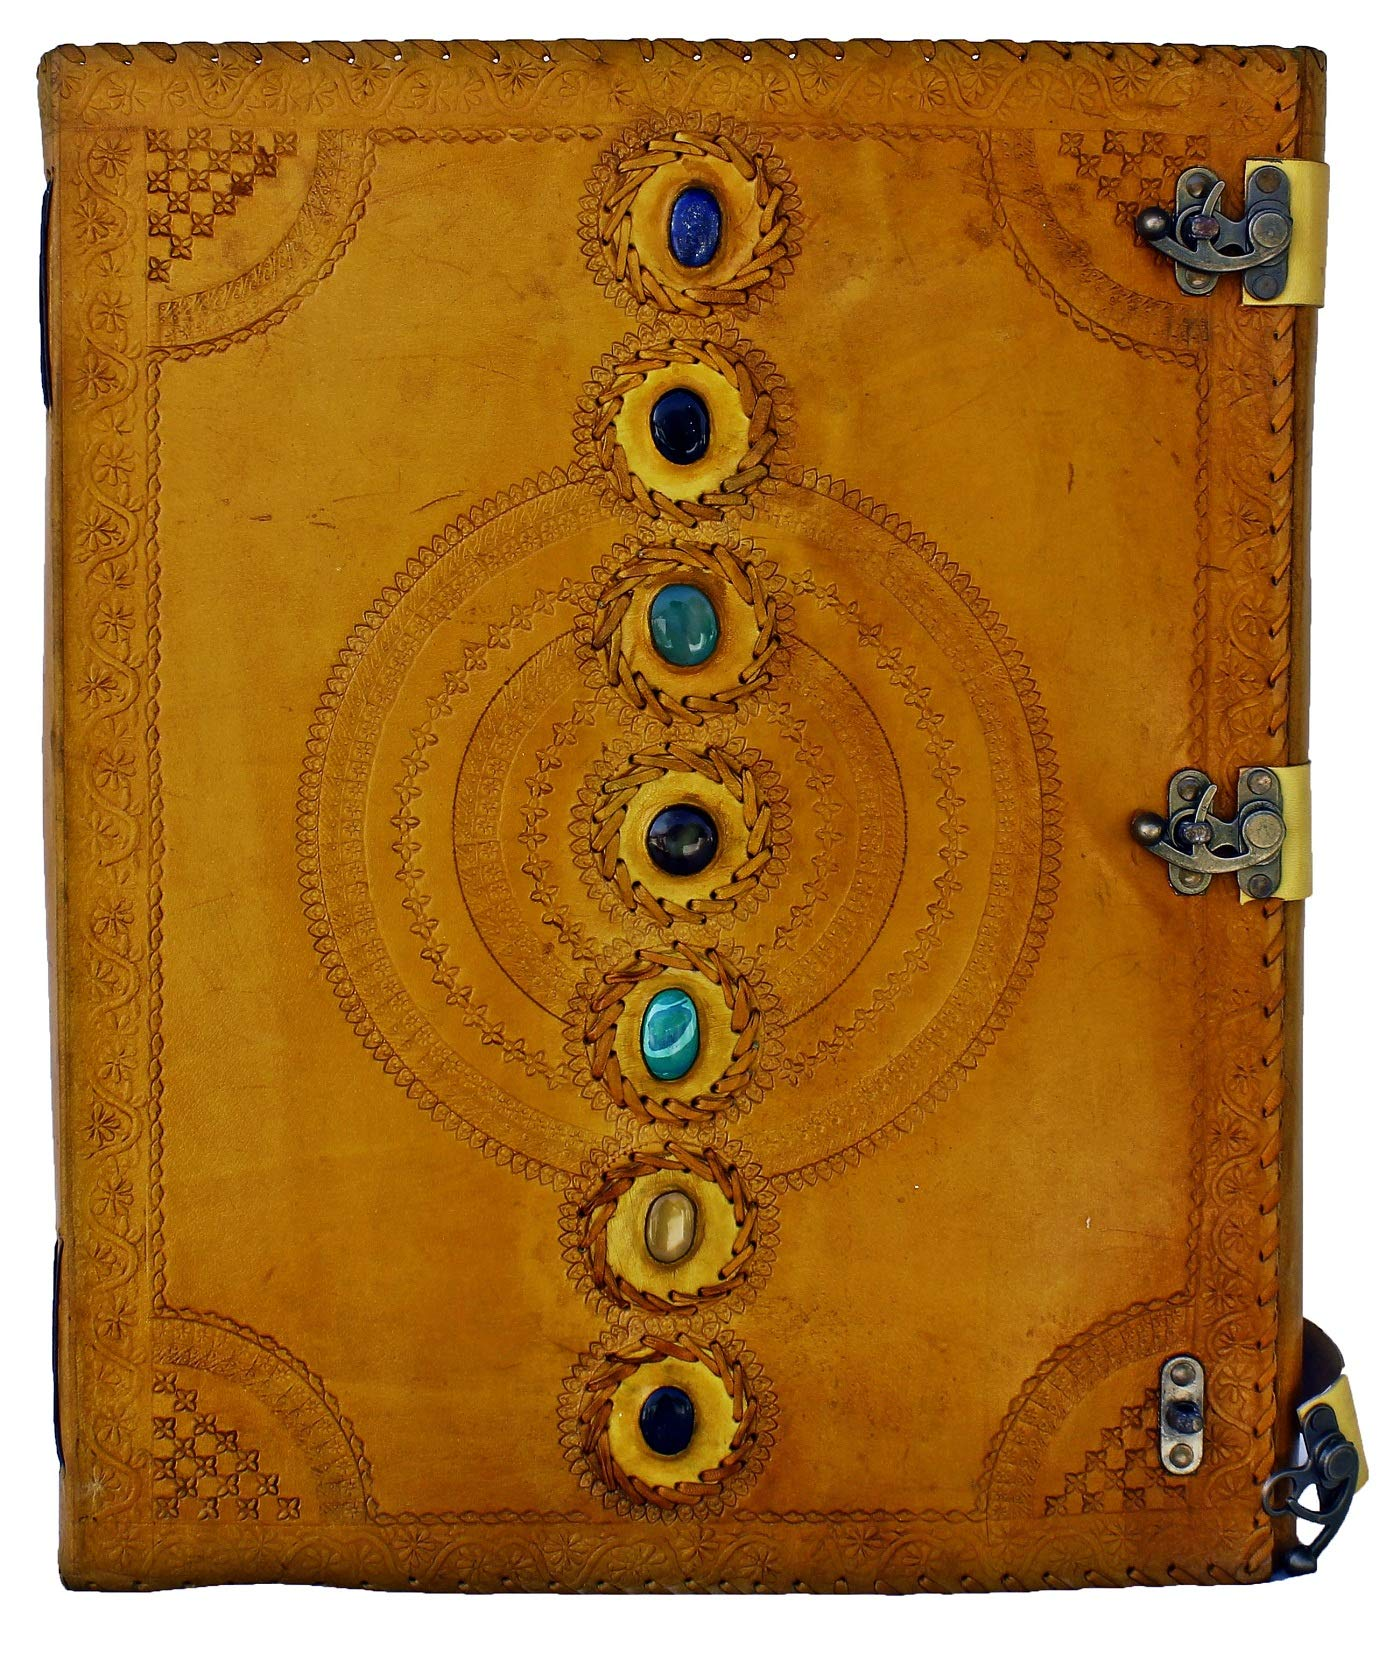 prastara Seven Chakra Medieval Stone Embossed Handmade Jumbo Leather Journal Book of Shadows Notebook Office Diary College Poetry Sketch (Yellow, 13x18)